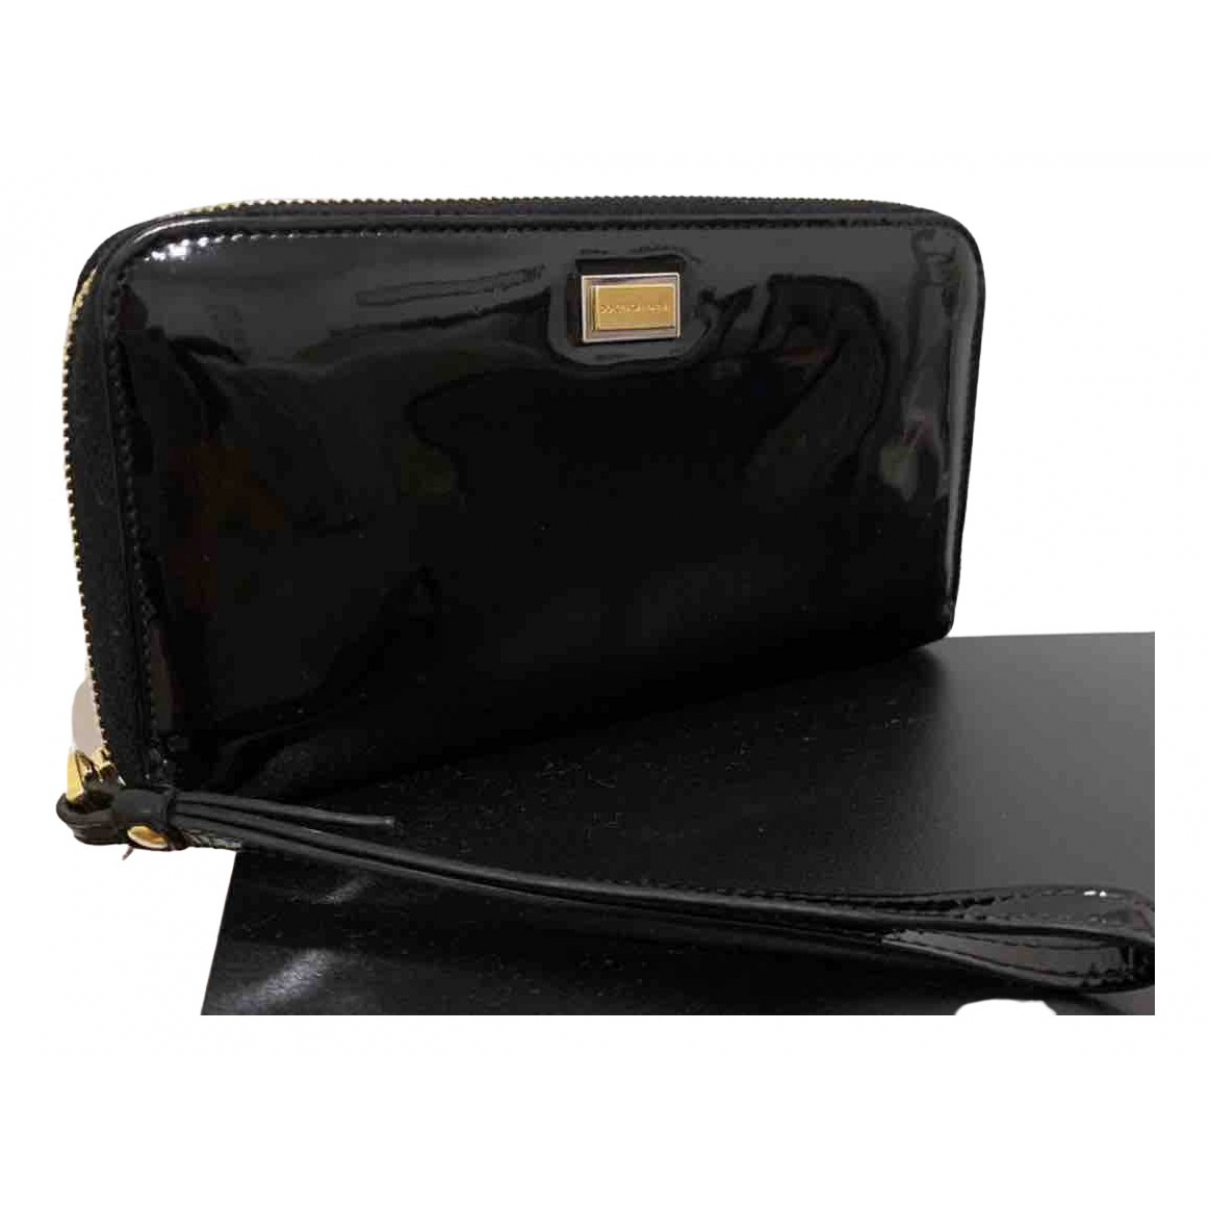 Dolce & Gabbana N Black Patent leather wallet for Women N